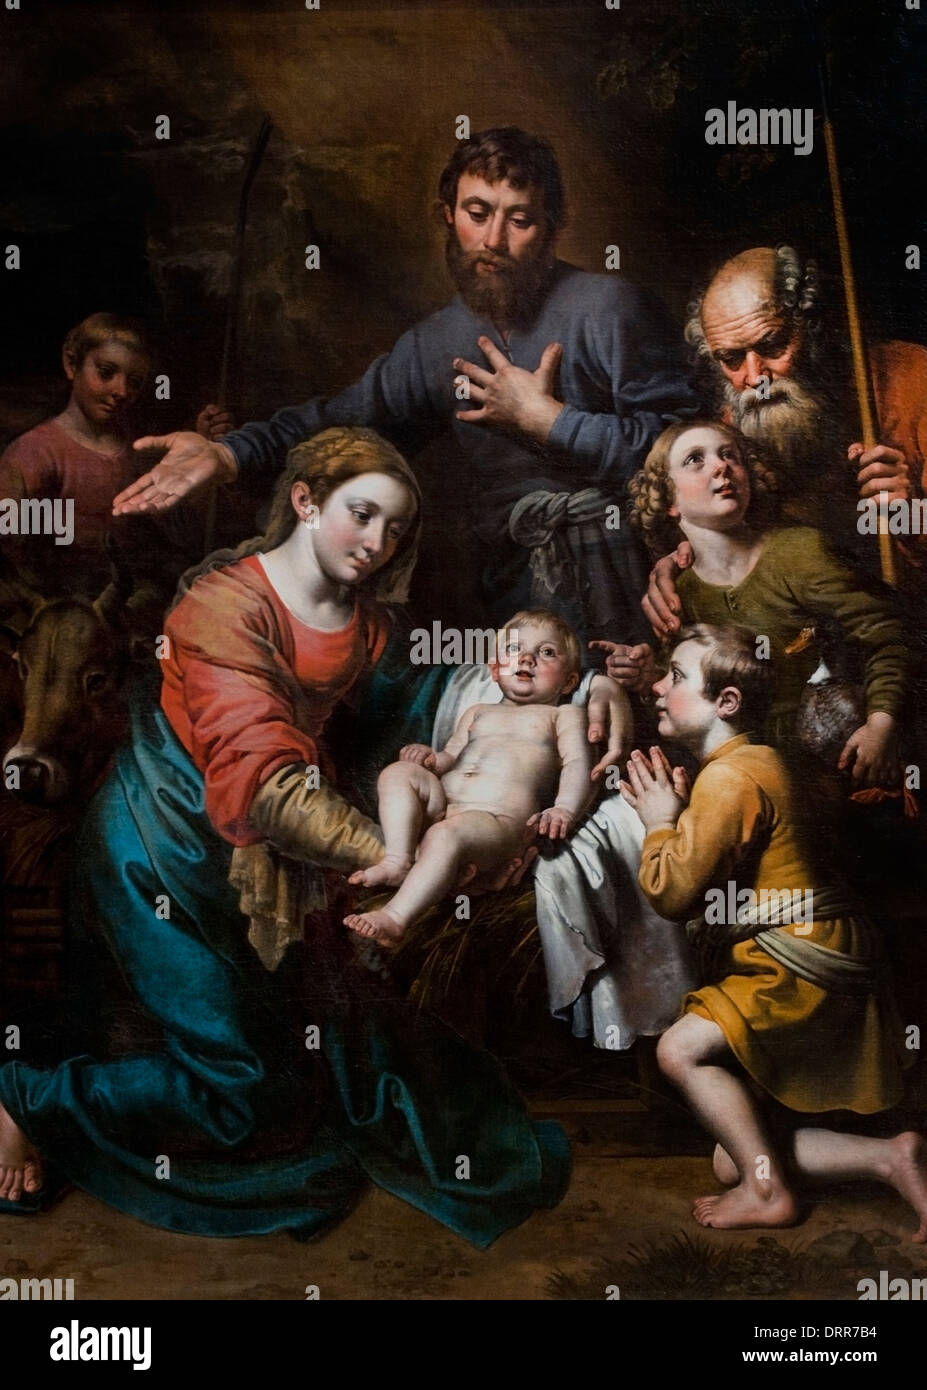 The Adoration of the Shepherds by Theodoor van Loon  1581-1649 Dutch Netherlands - Stock Image